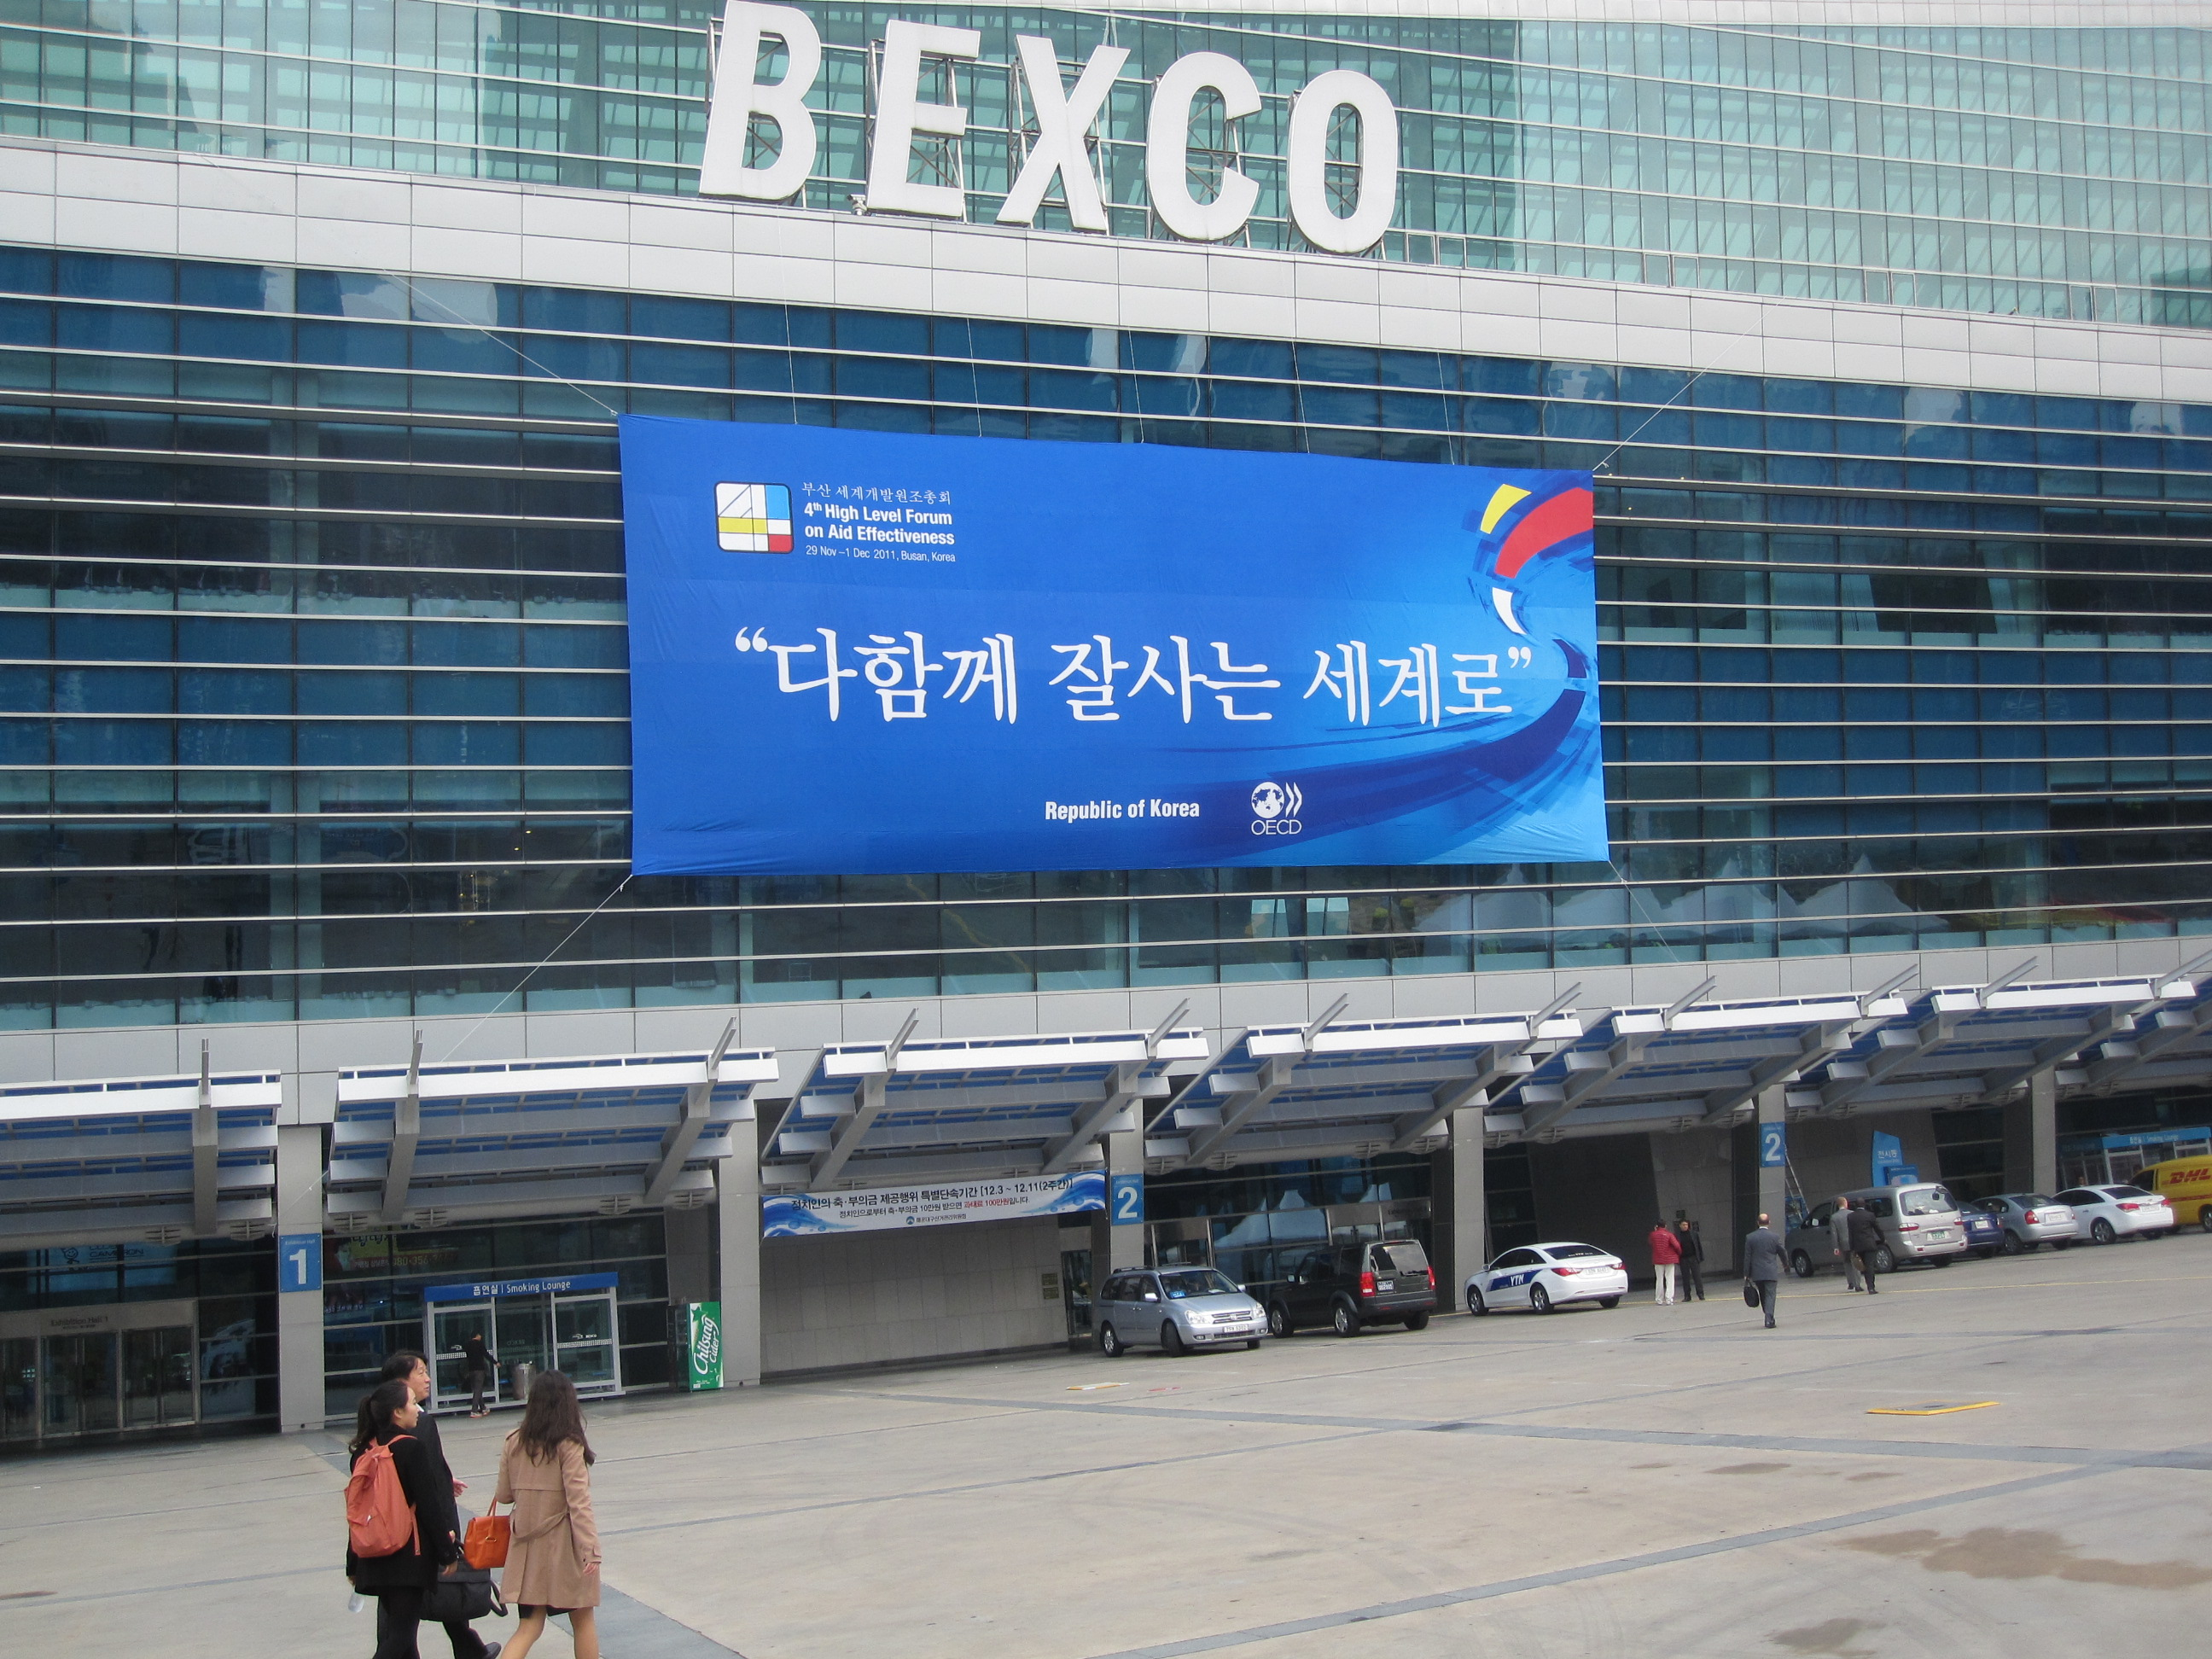 The Bexco Conference Centre in Busan